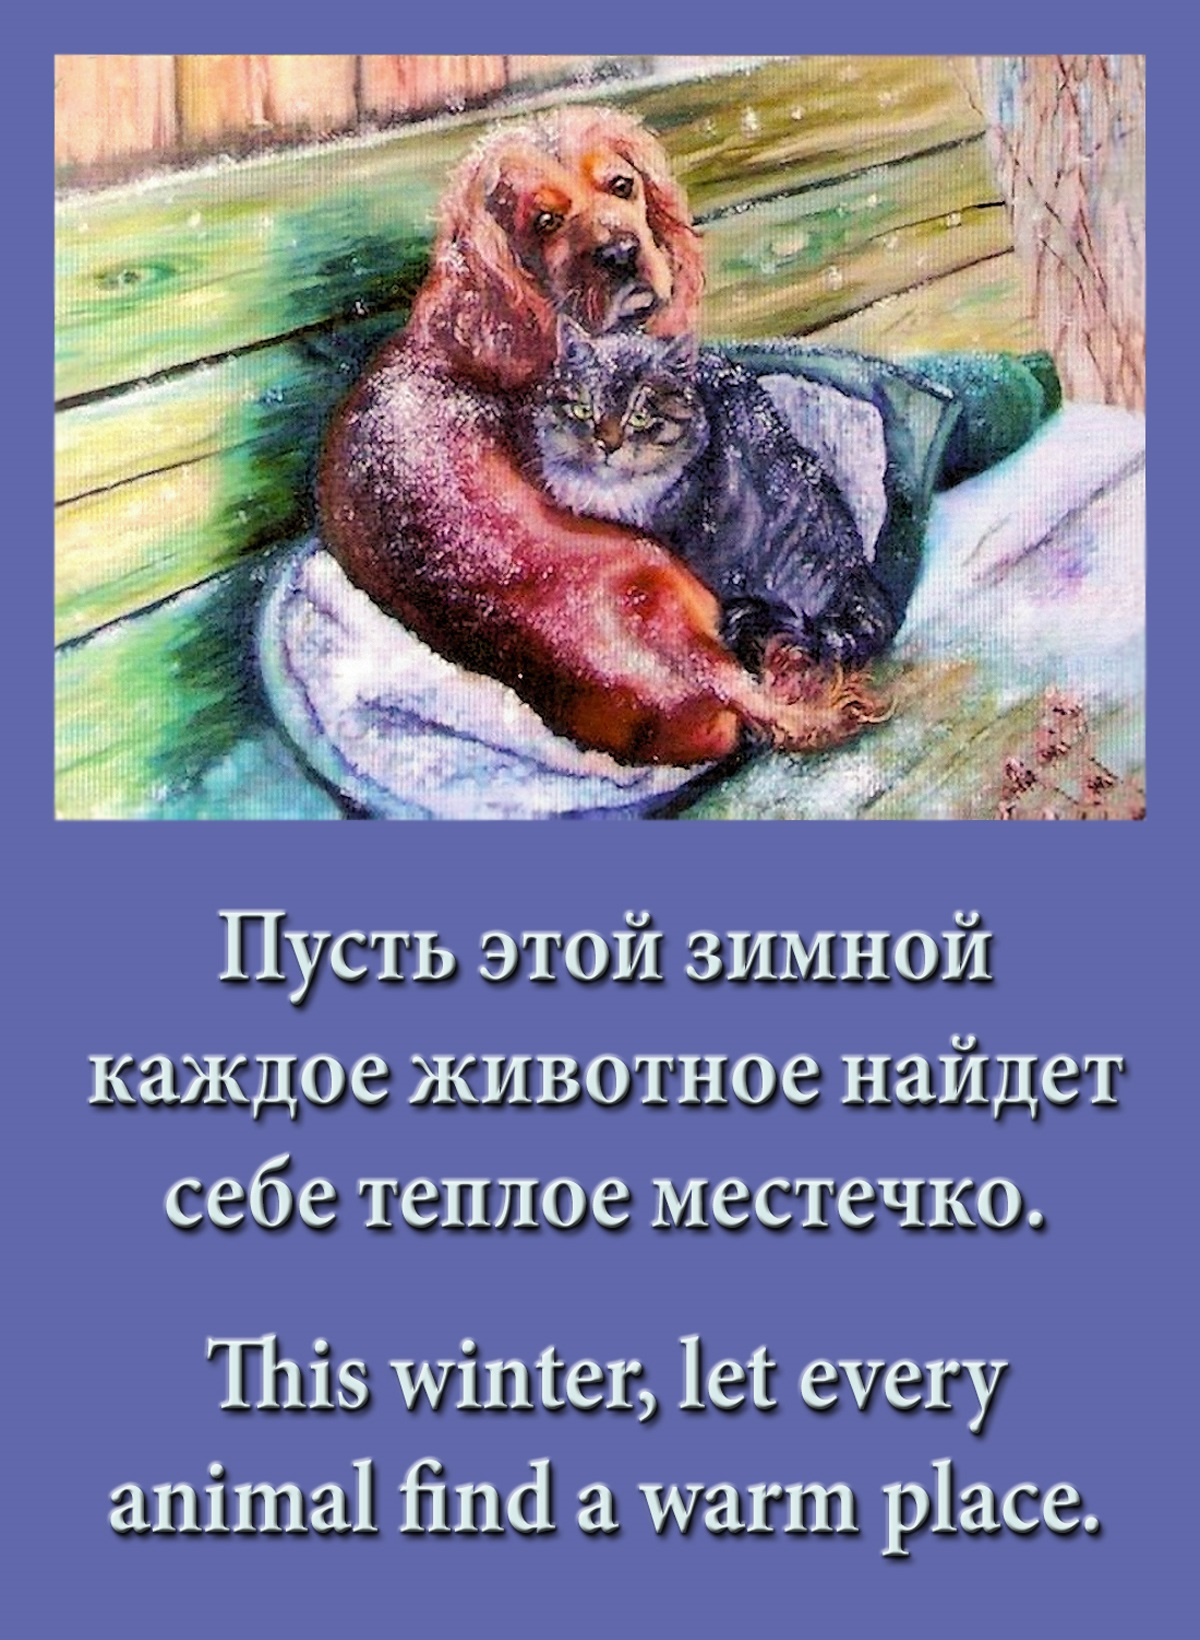 00-cold-cat-and-dog-201116